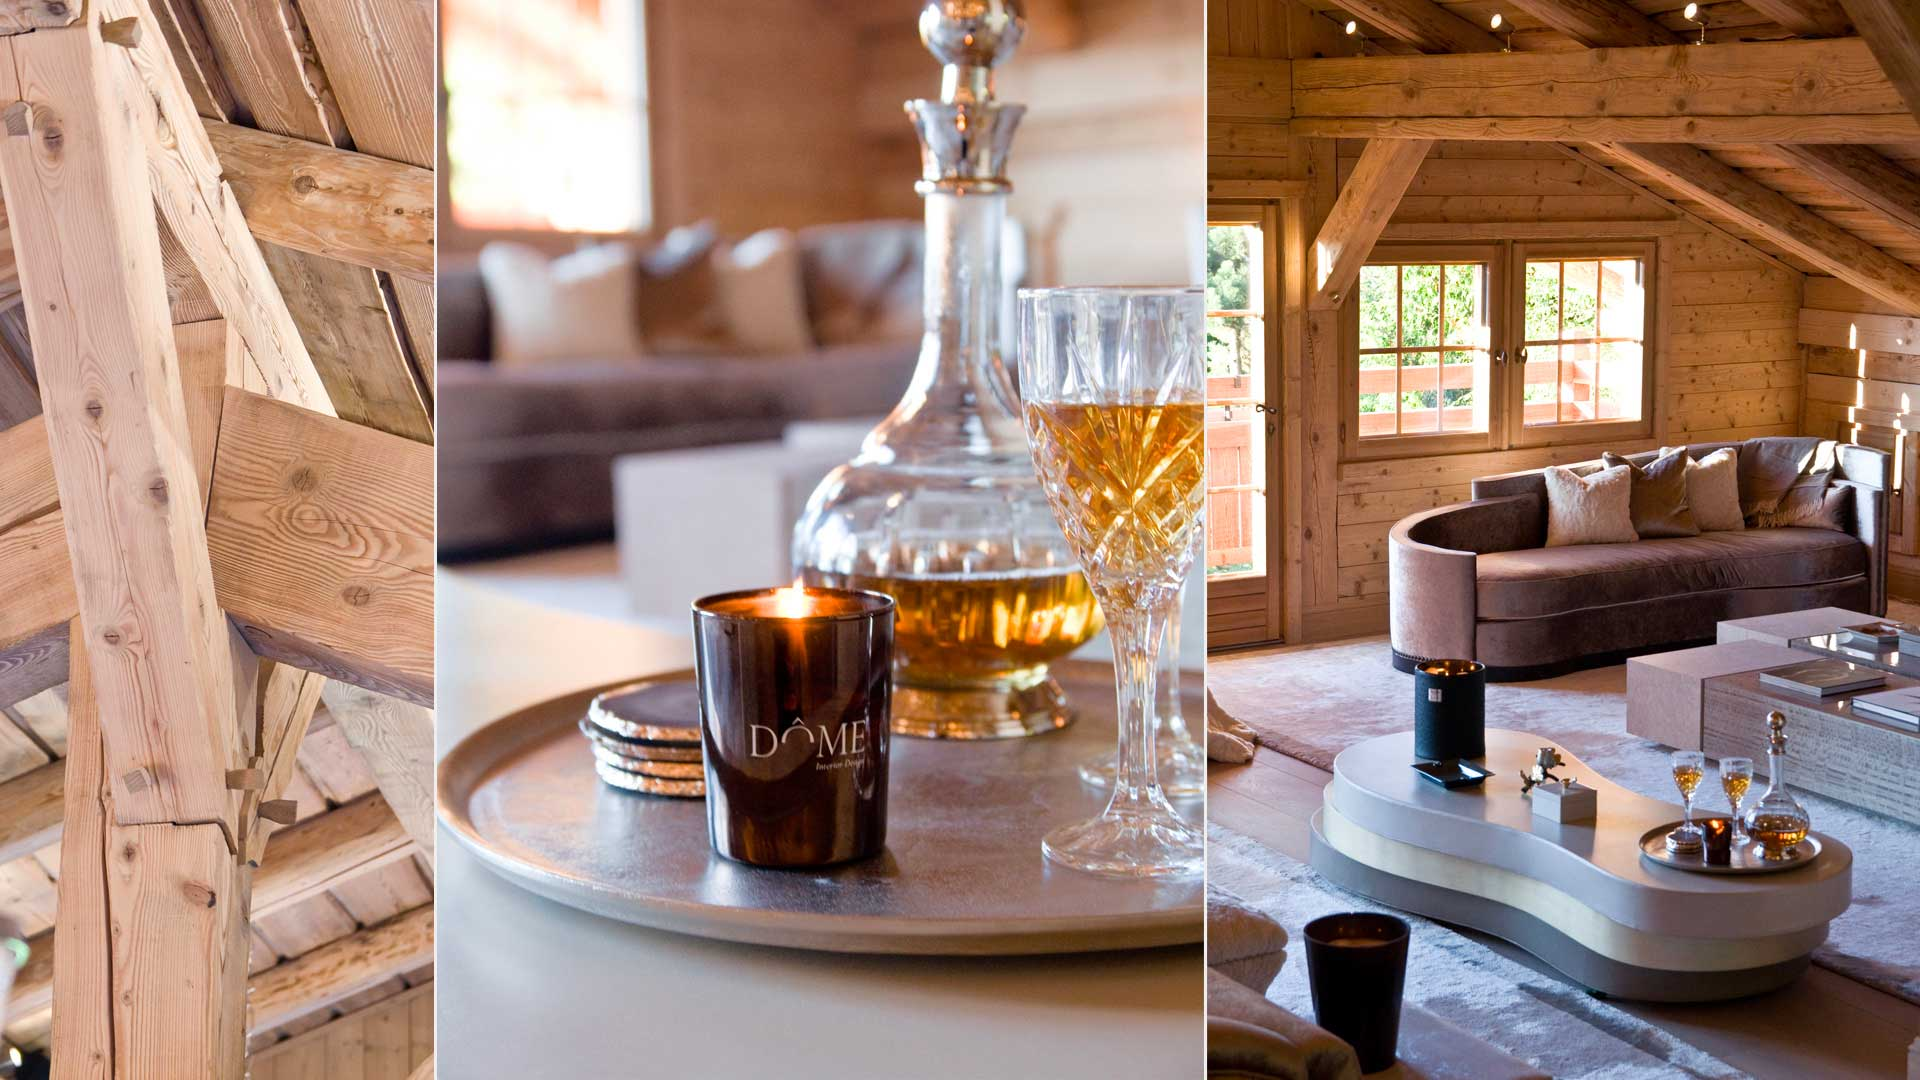 CHALET-FRENCH-ALPS-03-Dome-interior-design-Geneve-Suisse